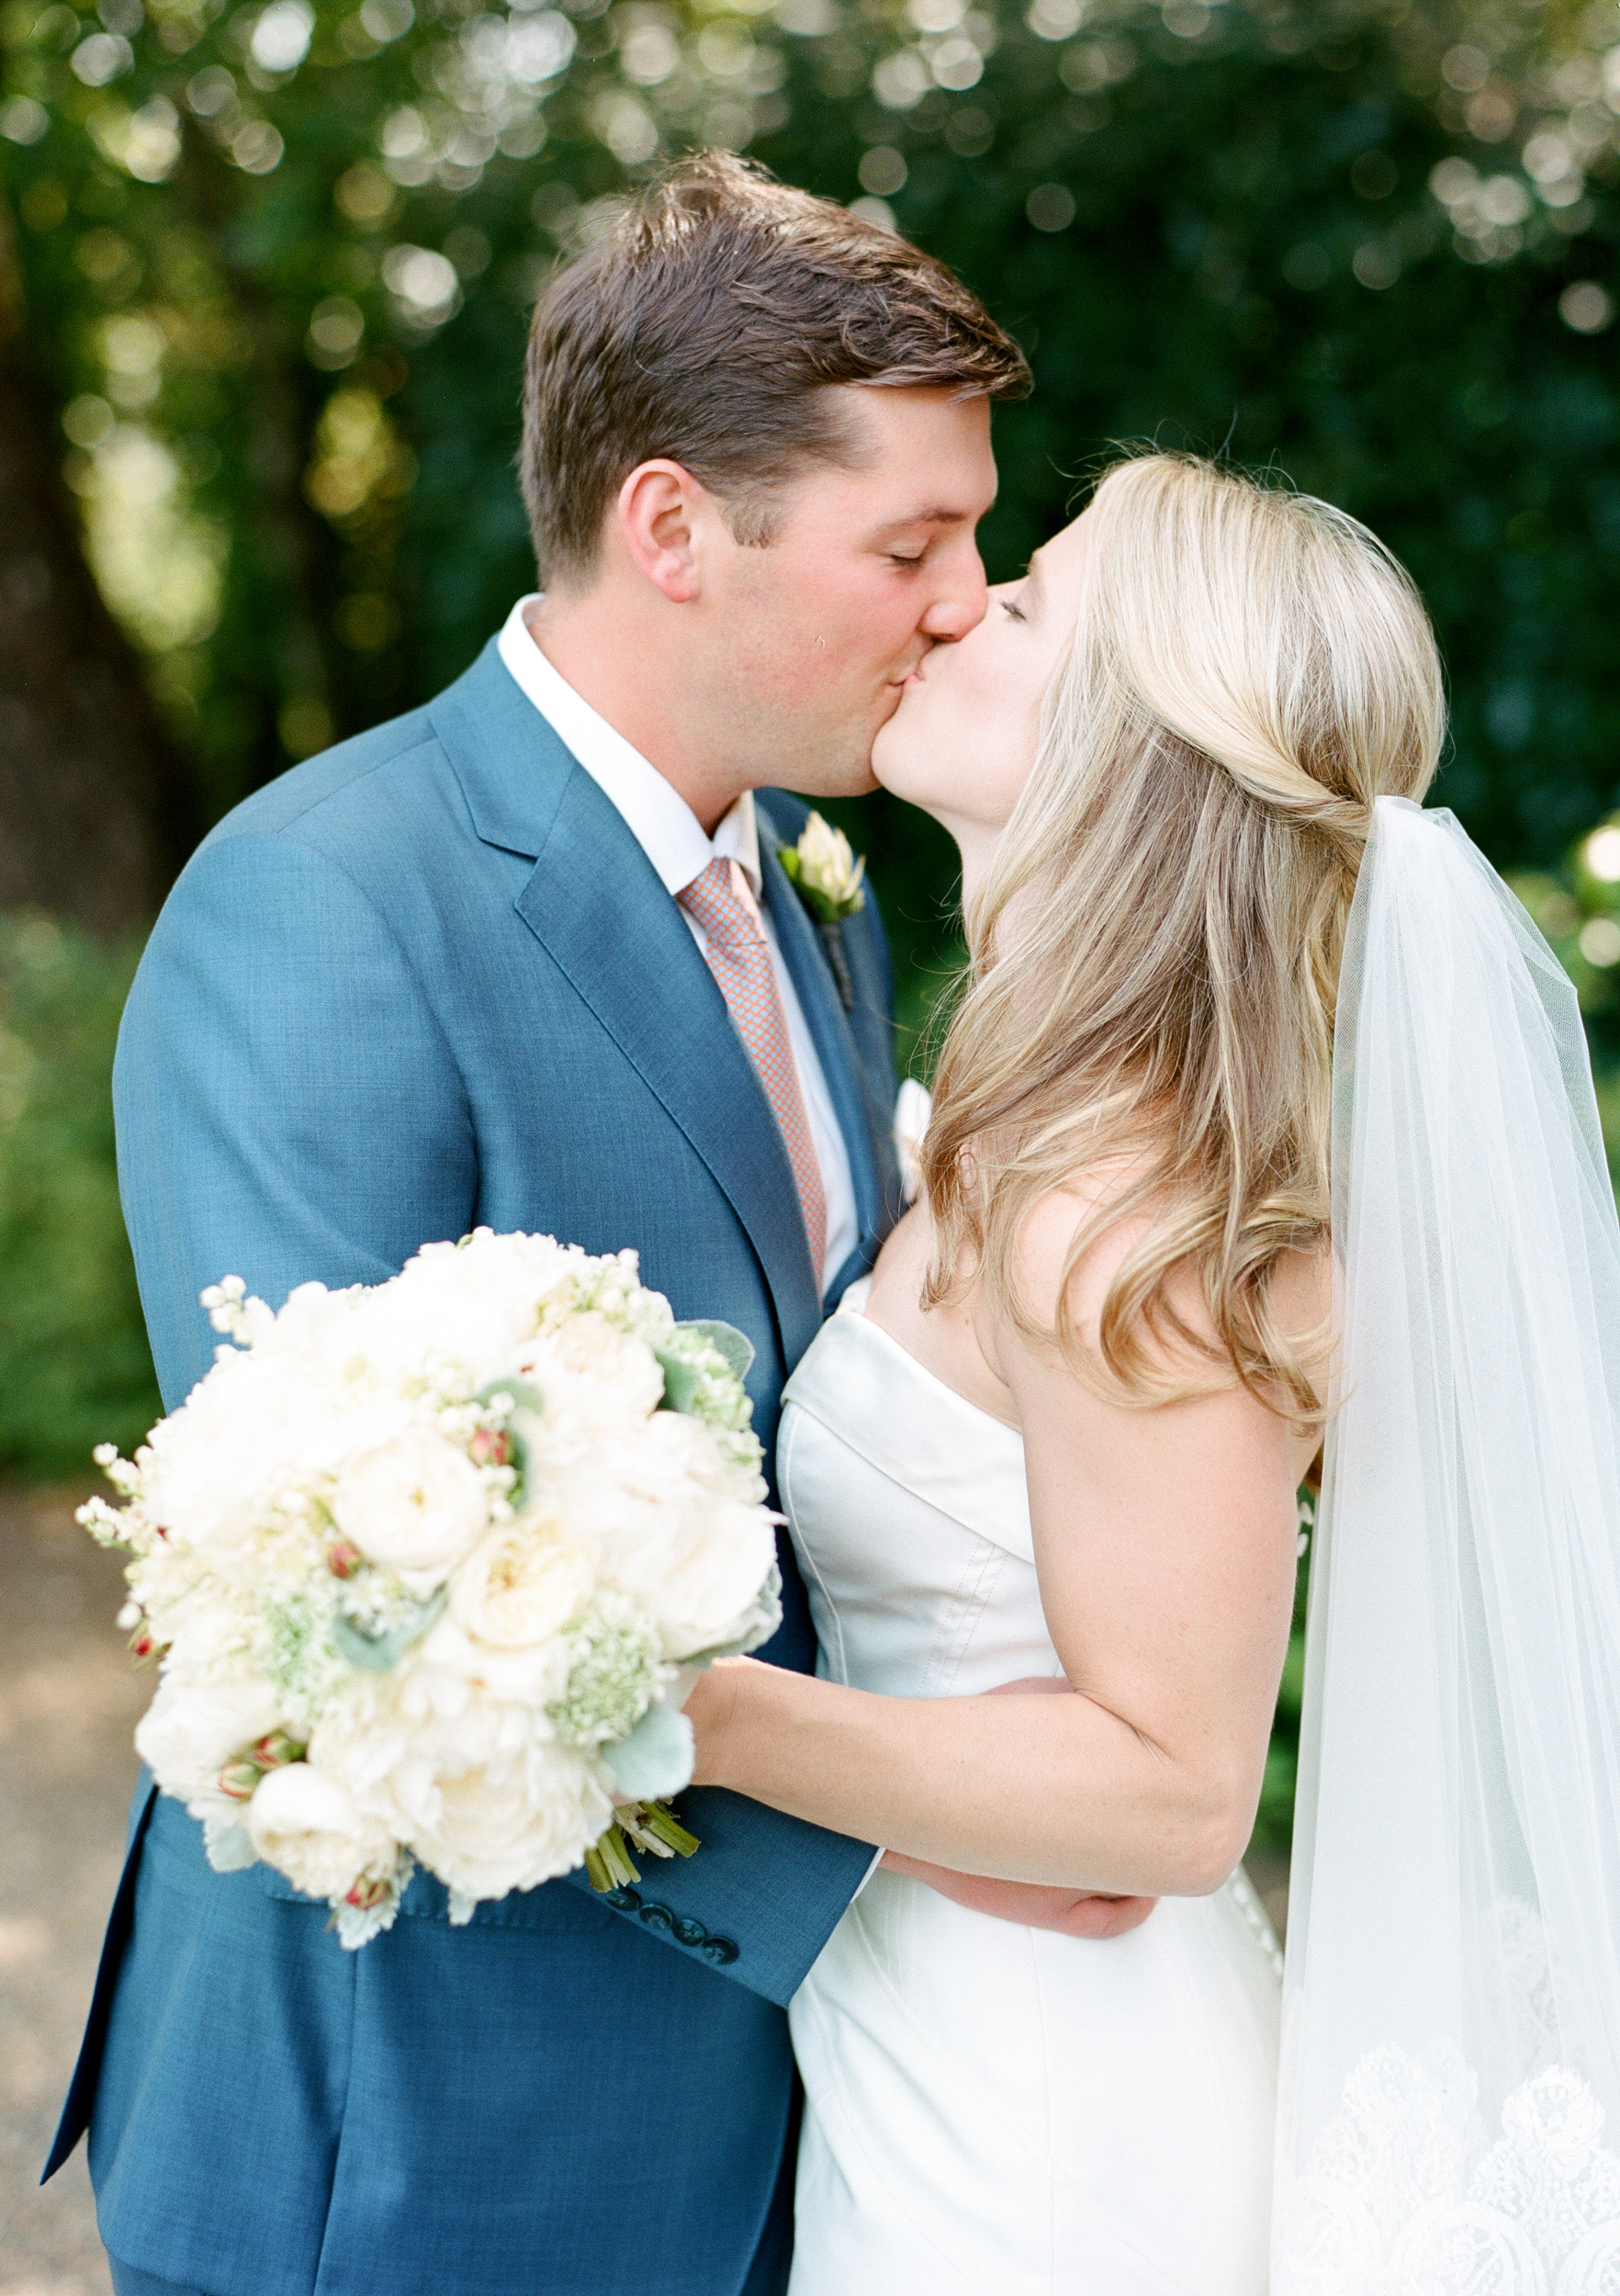 Sarah and James share a kiss before the ceremony; photo by Sylvie Gil